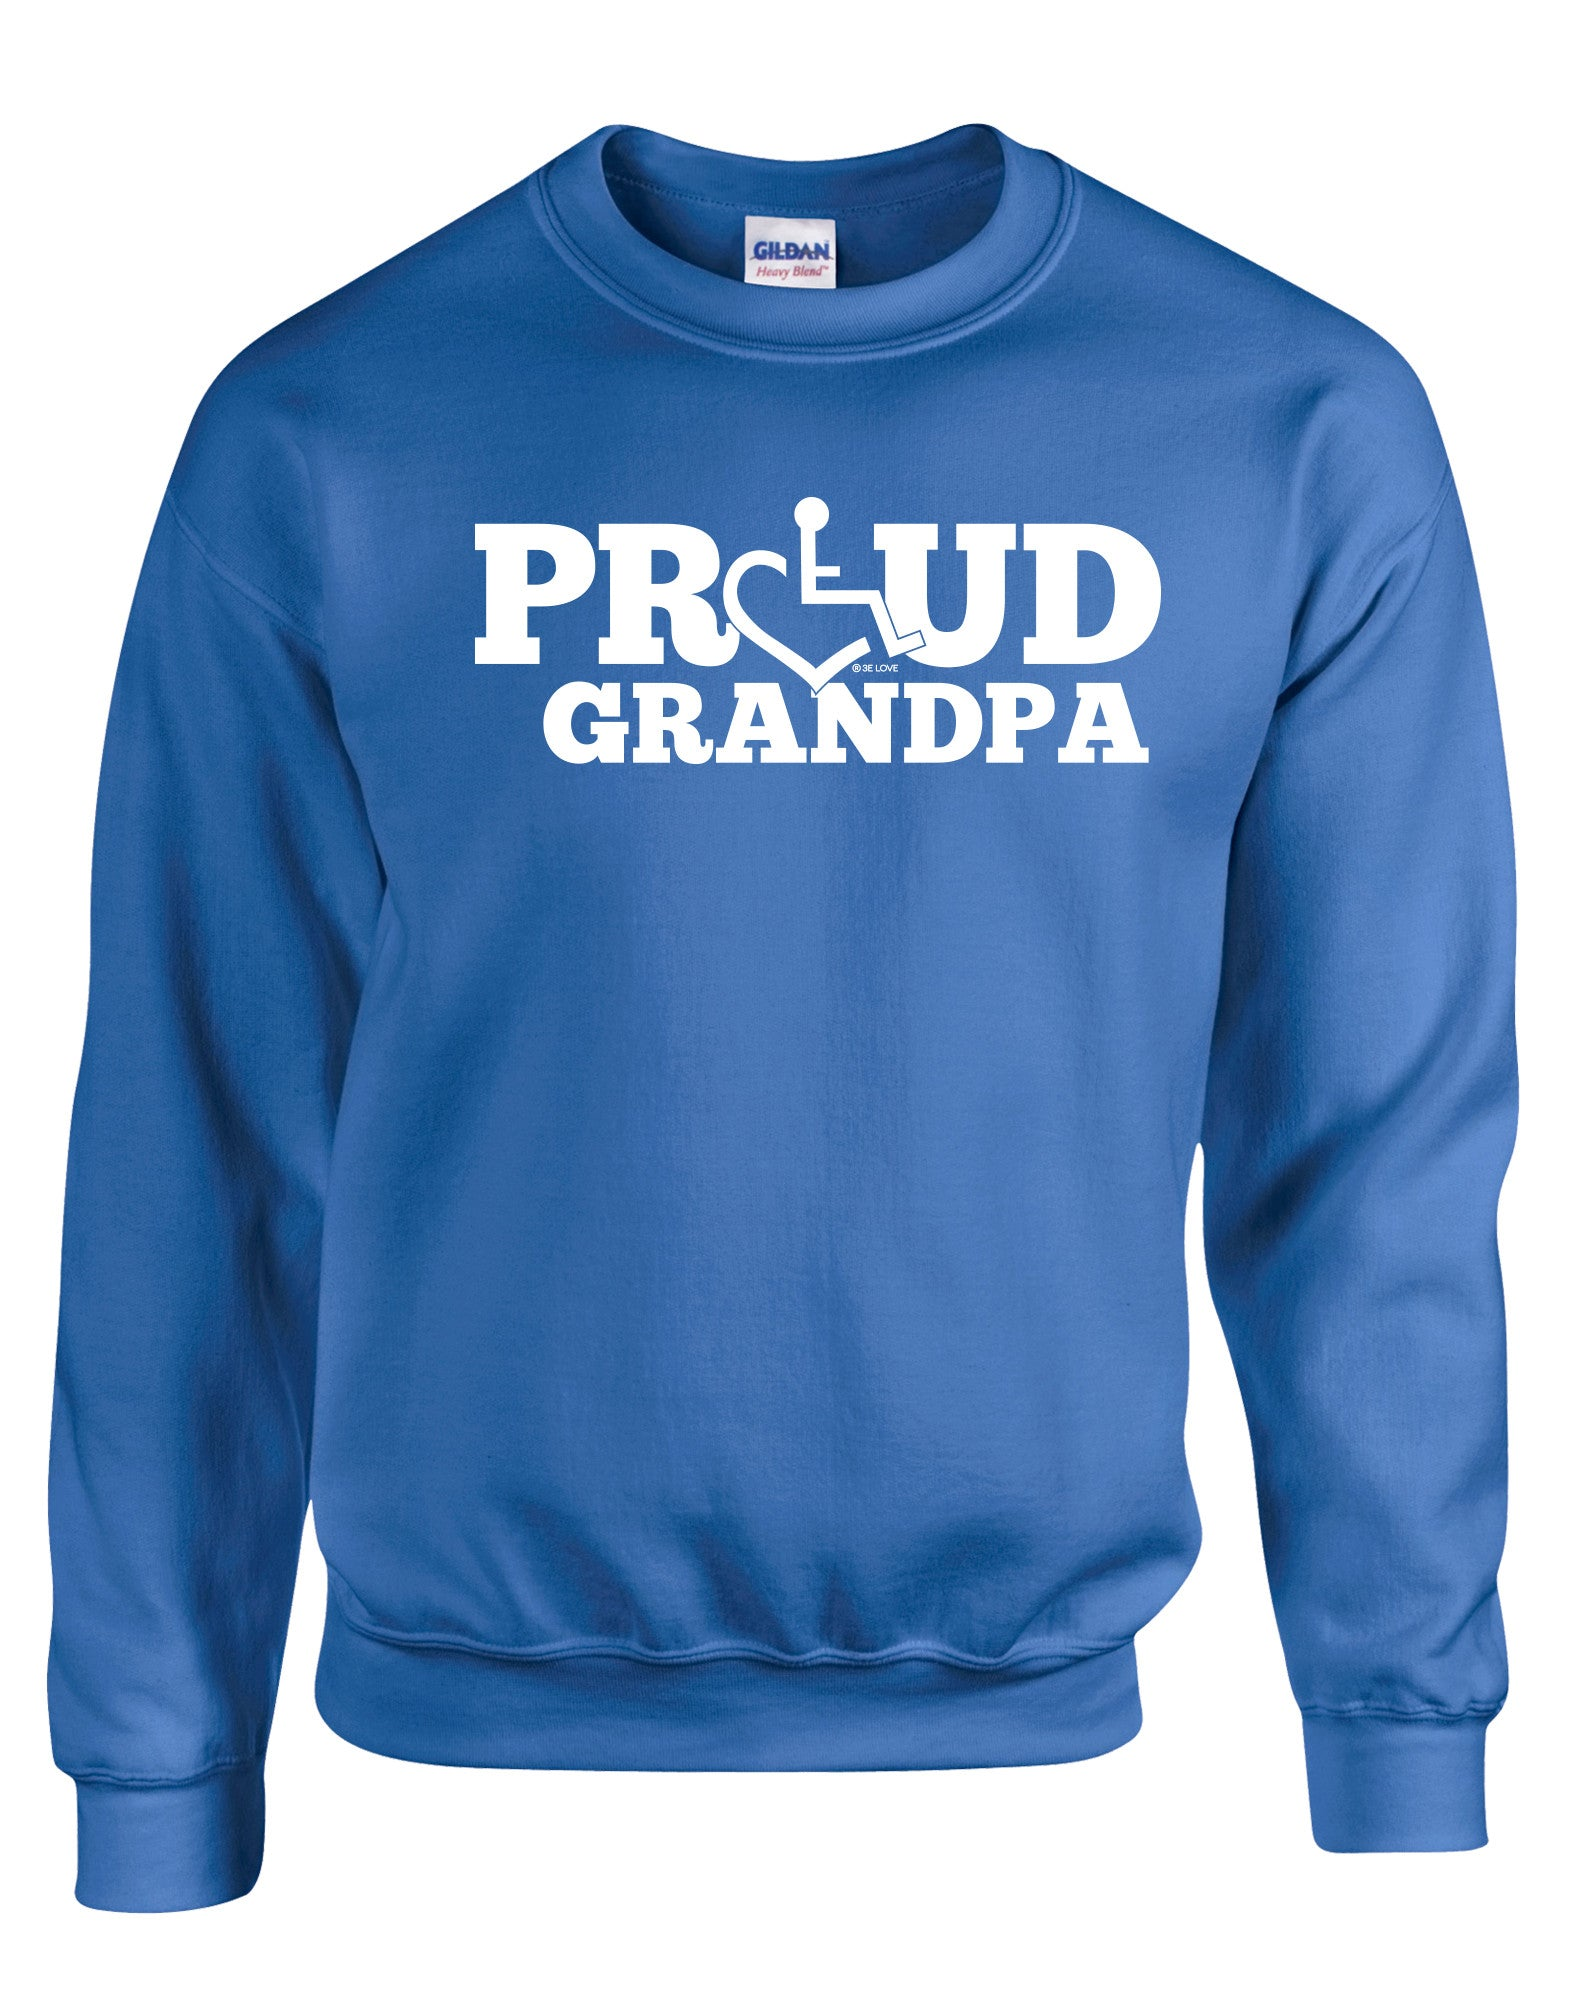 Proud Grandpa Crewneck Sweatshirt